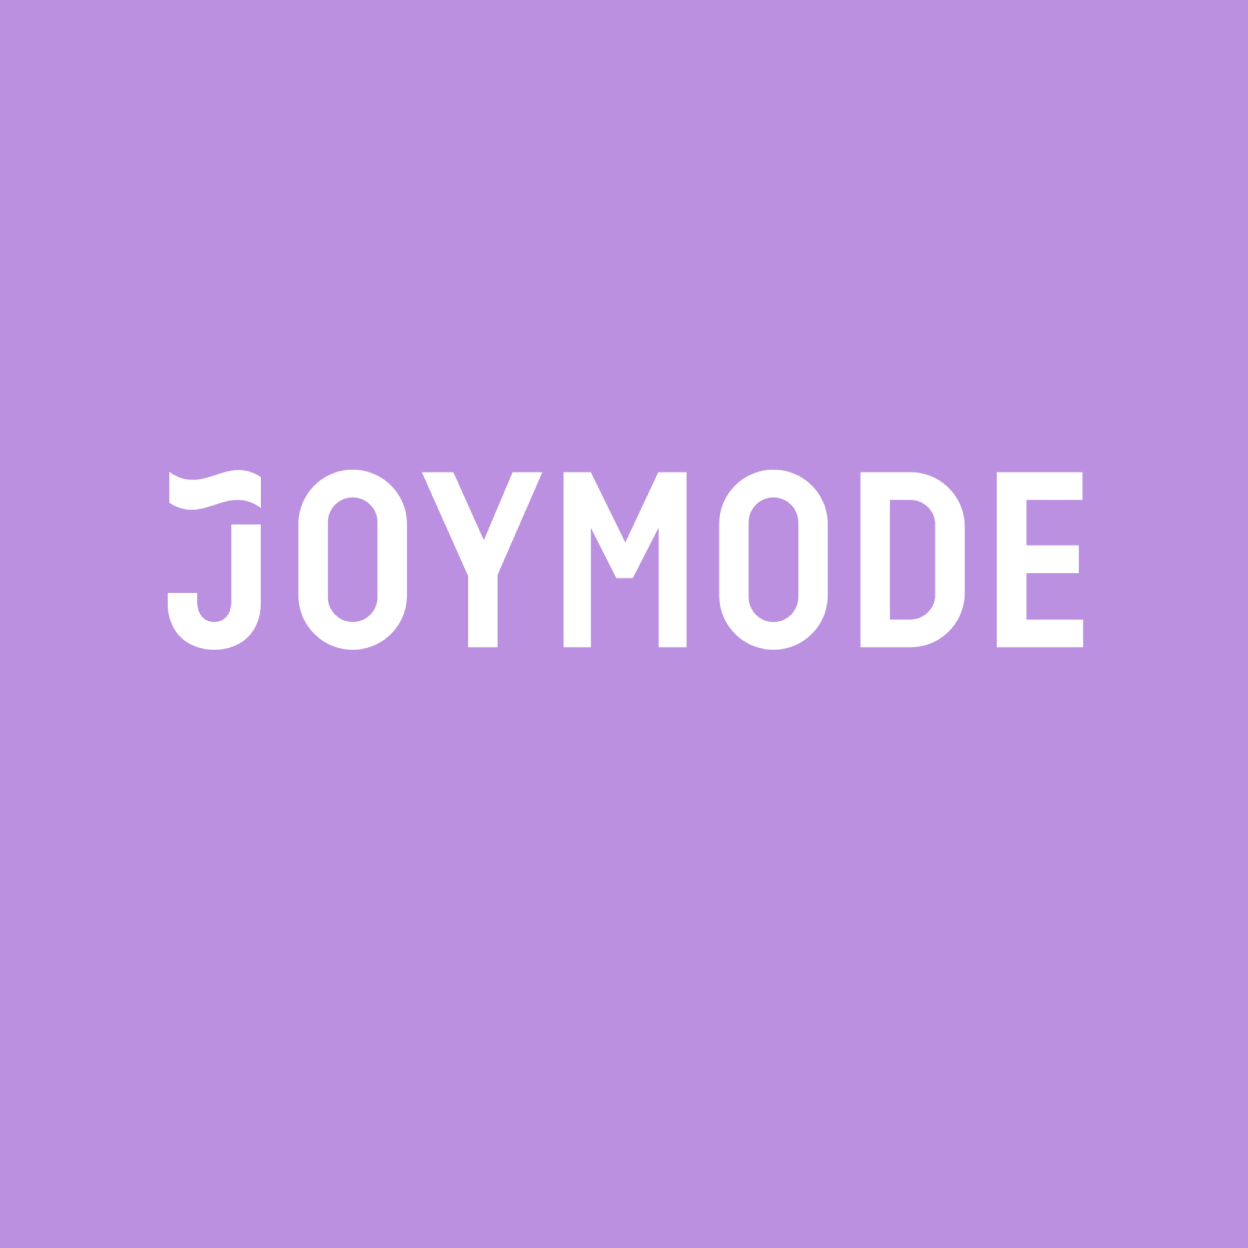 Joymode, backed by Homebrew, Lowercase, Founder Collective and Sherpa Capital, allows you to access everything you need for a memorable experience without the hassle of ownership.